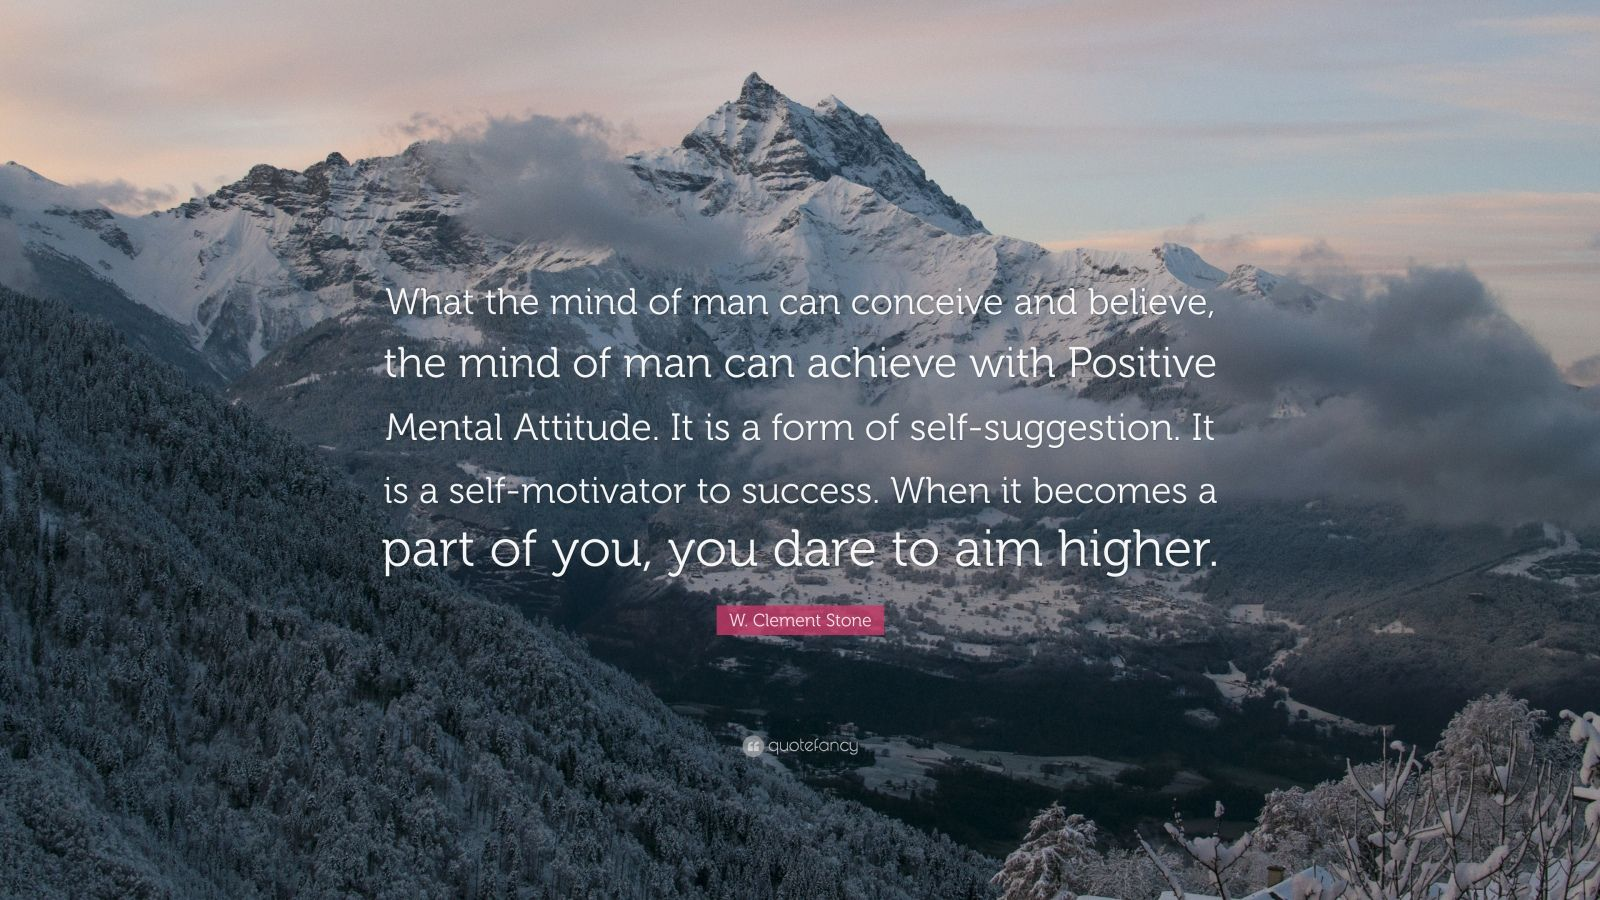 "W. Clement Stone Quote: ""What the mind of man can conceive and believe, the mind of man can achieve with Positive Mental Attitude. It is a form of self-suggestion. It is a self-motivator to success. When it becomes a part of you, you dare to aim higher."""